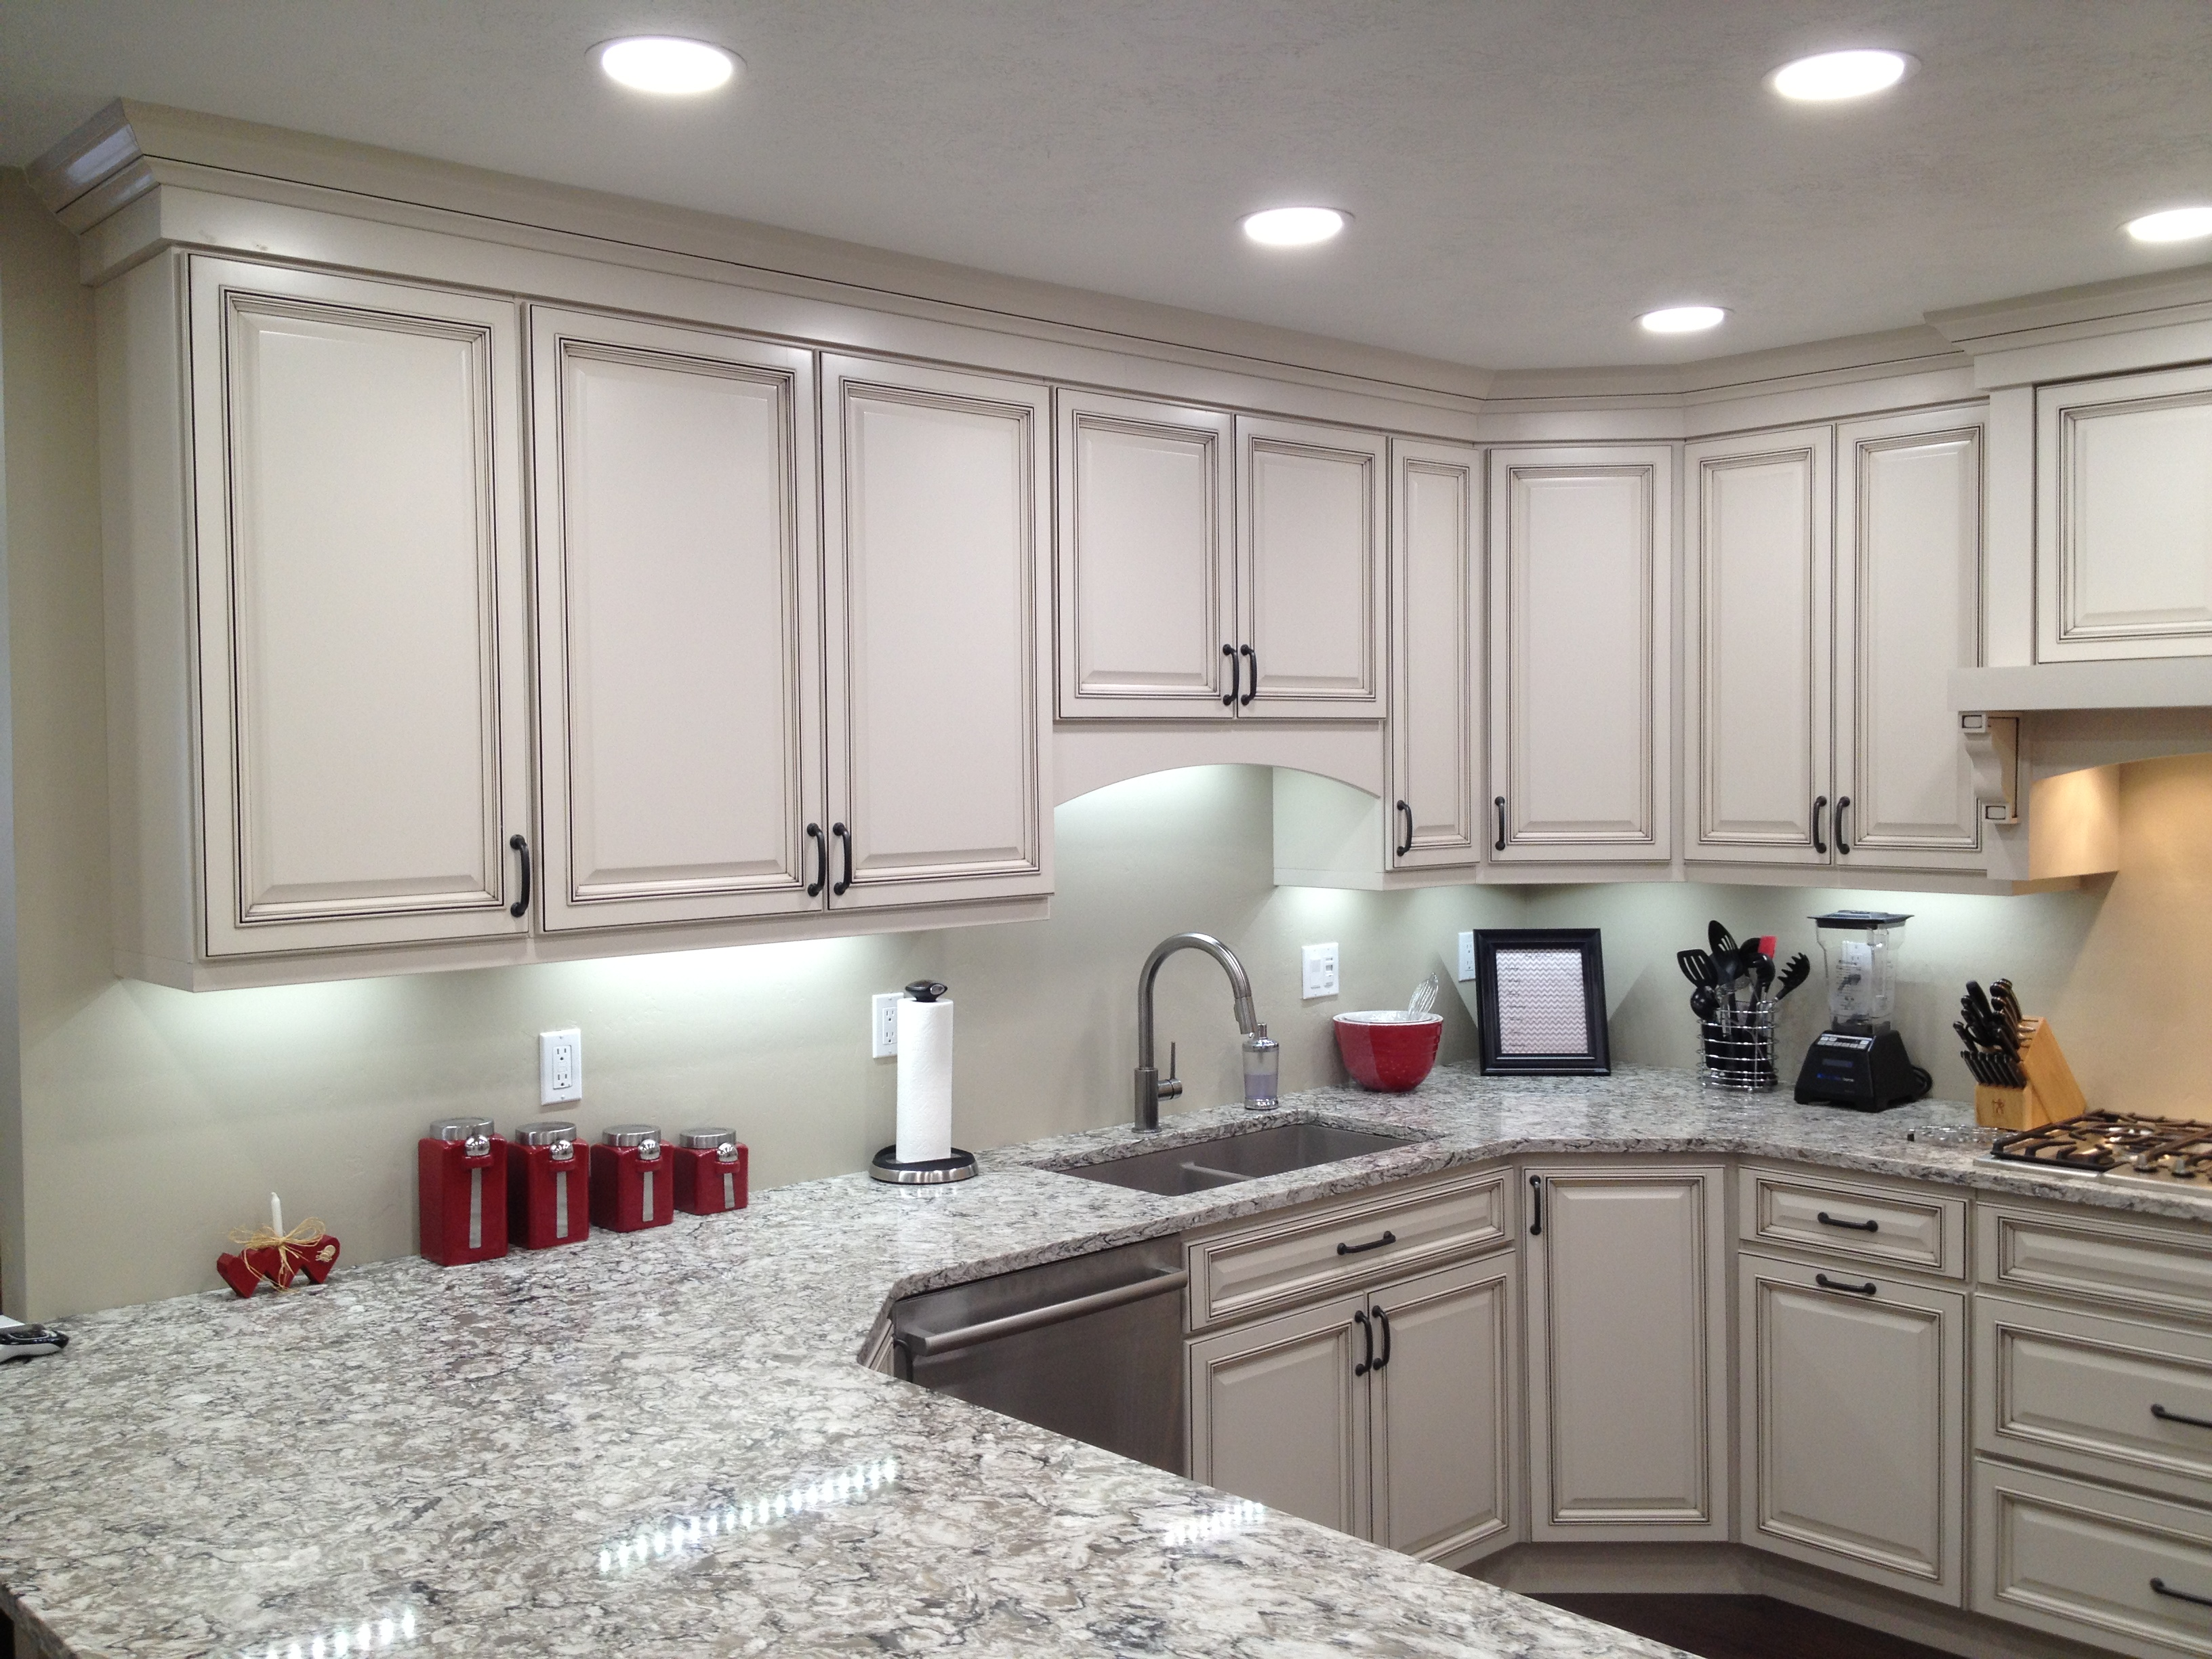 under cabinet lighting in kitchen. Delighful Under Pax LED Under Cabinet Lighting On Cabinet Lighting In Kitchen U